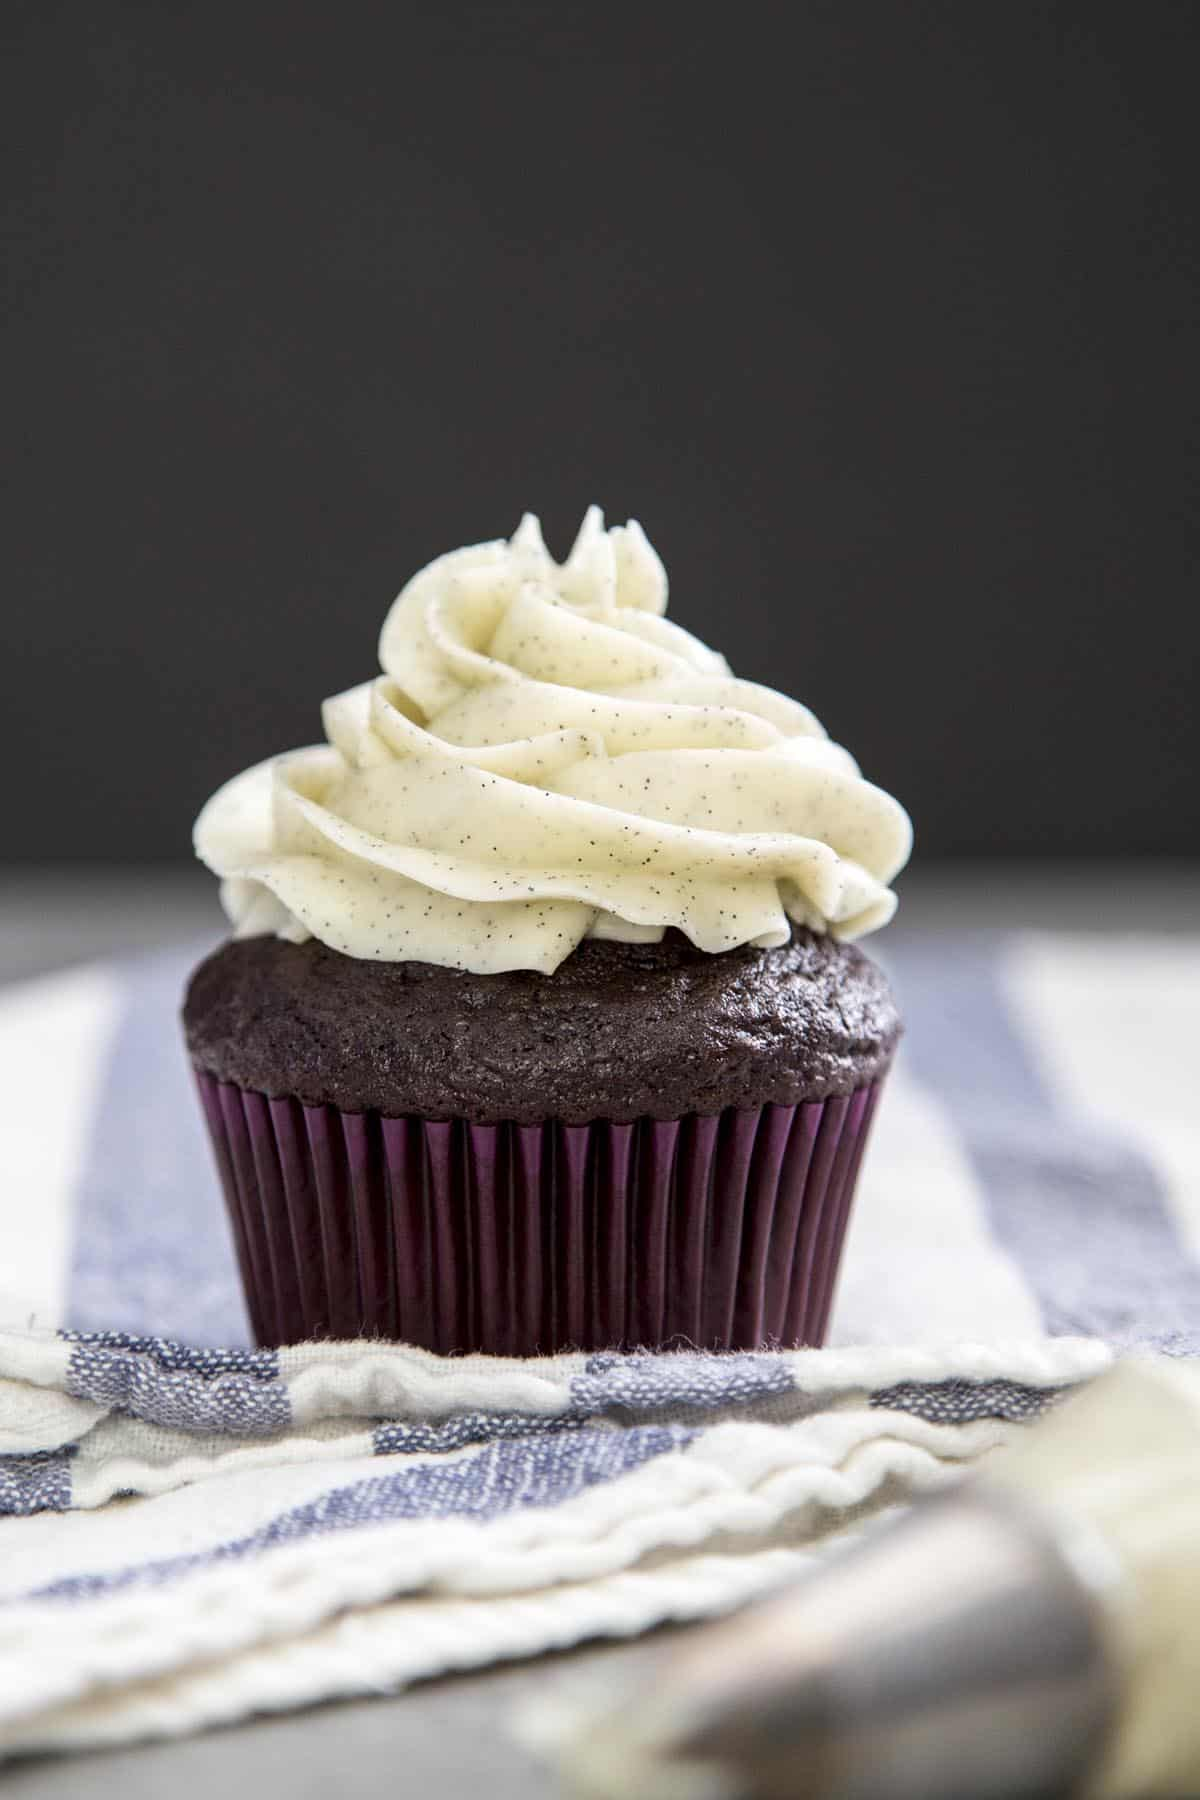 Vanilla bean swiss buttercream frosting on top of a chocolate cupcake